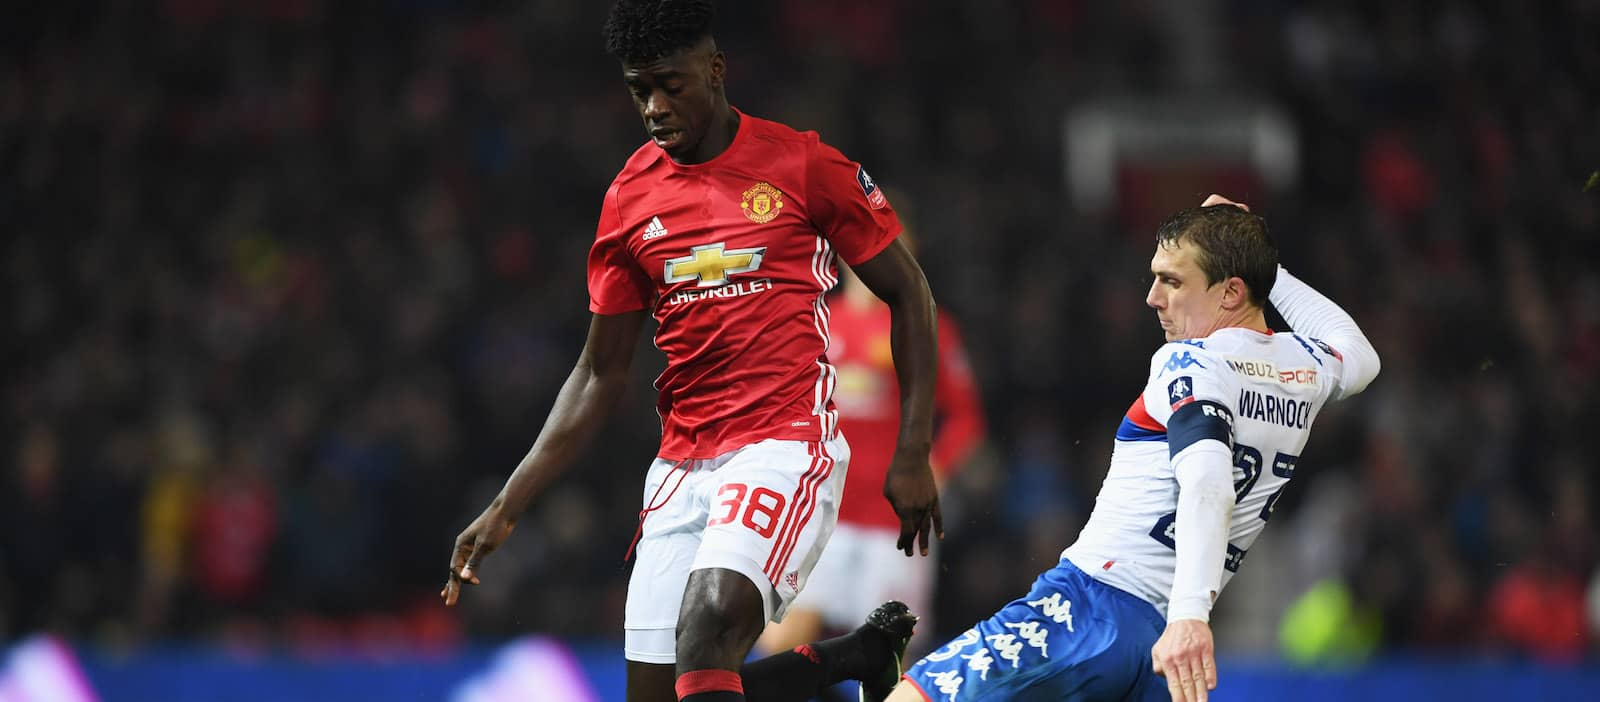 Axel Tuanzebe training with Man United's first-team ahead of Saint Etienne clash